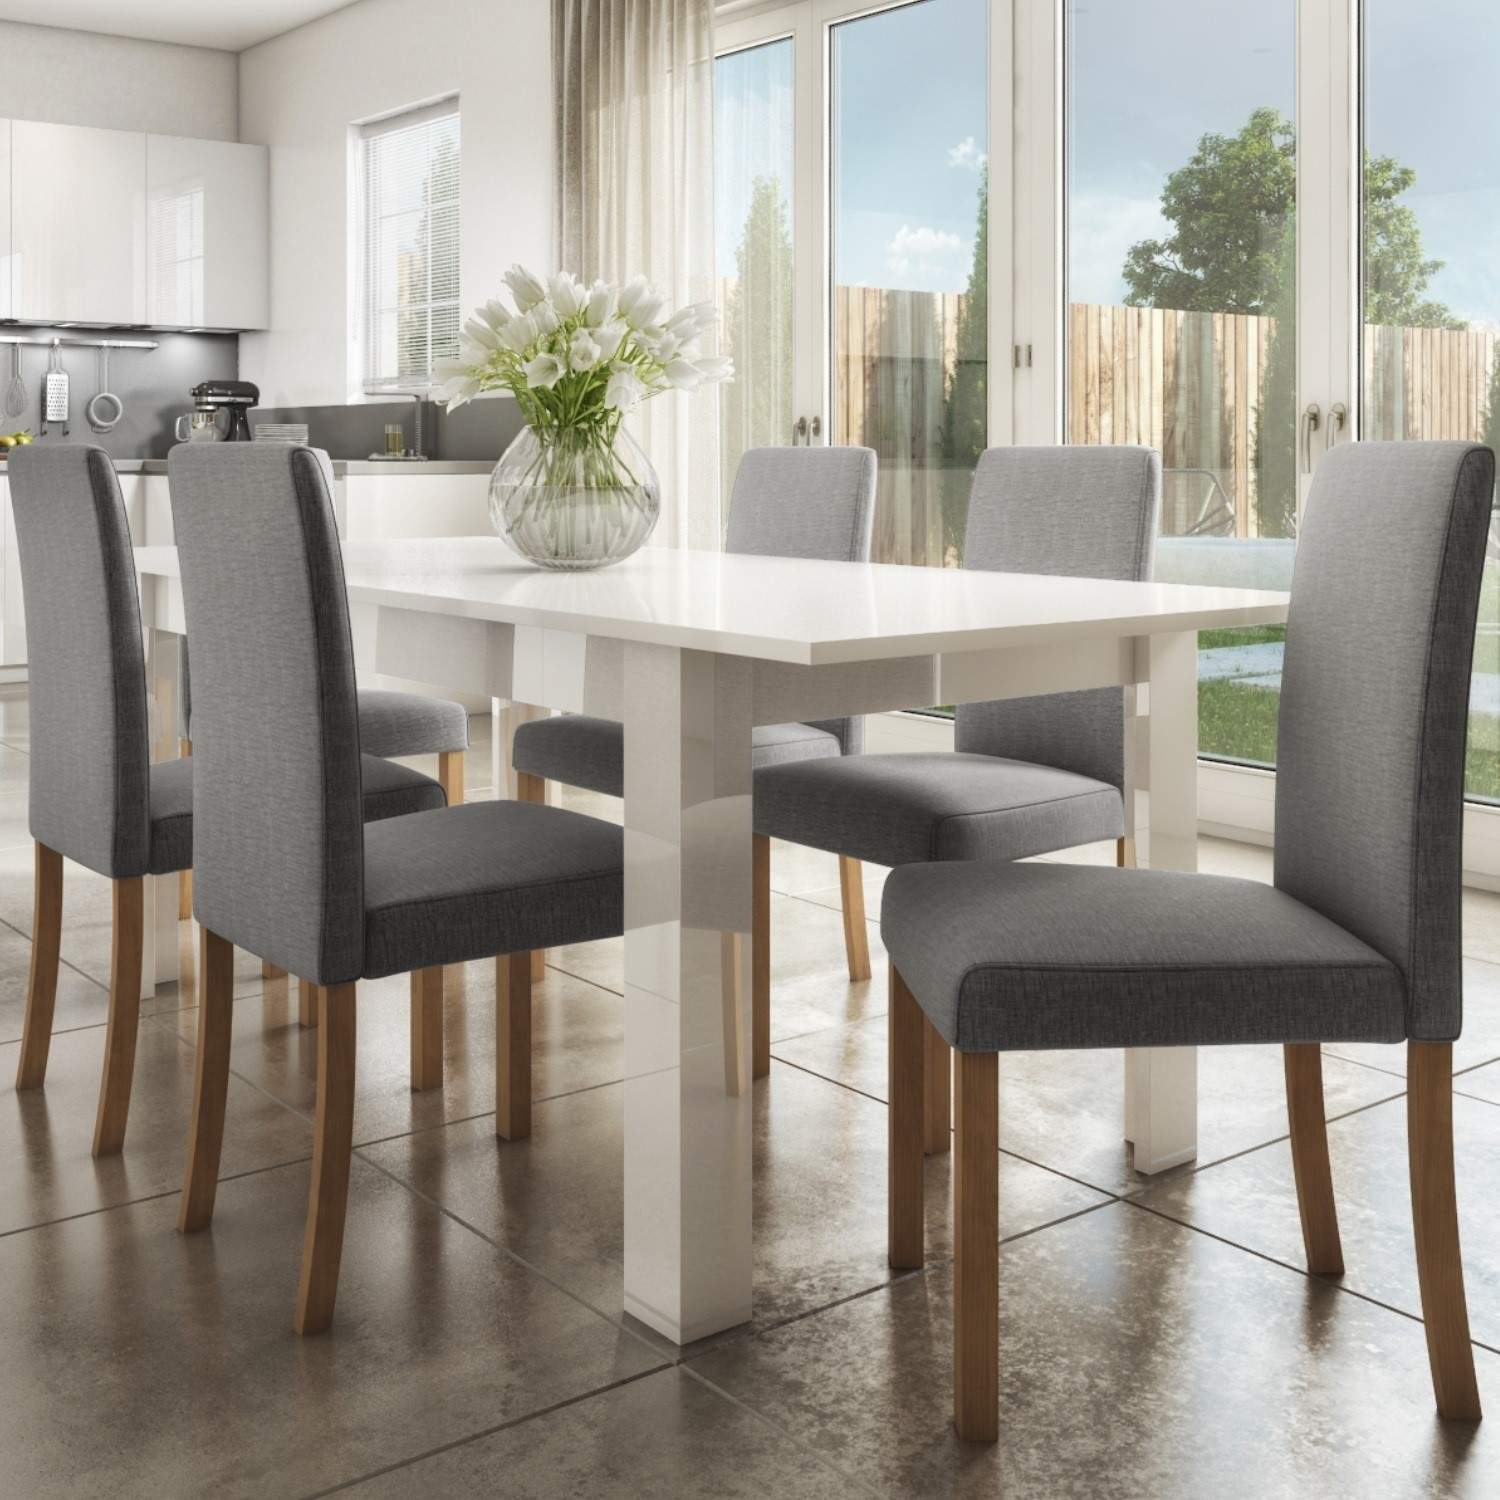 Details about Vivienne White High Gloss Kitchen Dining Table + 10 Grey  Fabric Chairs